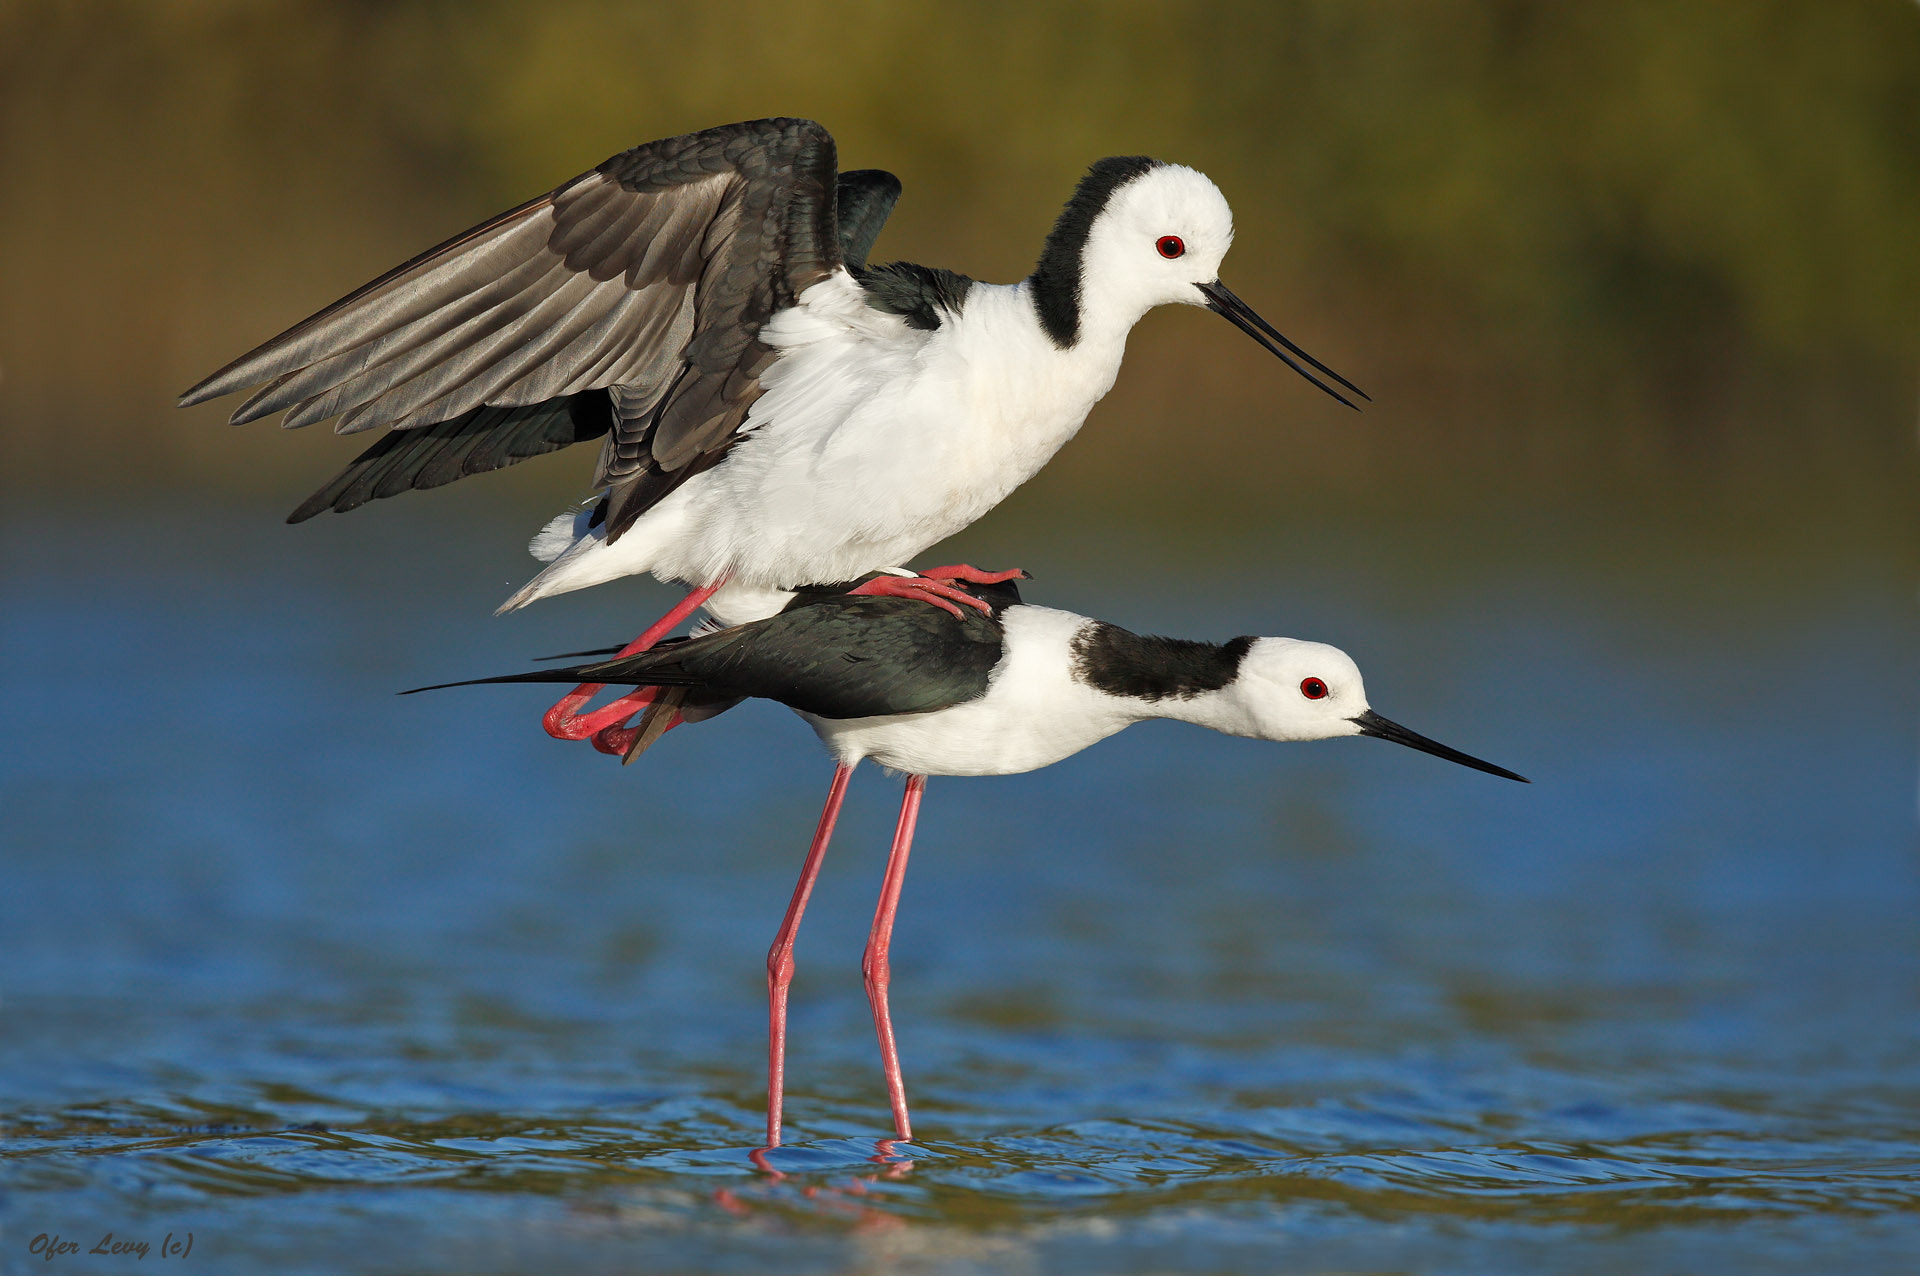 Photograph Love on stilts by Ofer Levy on 500px